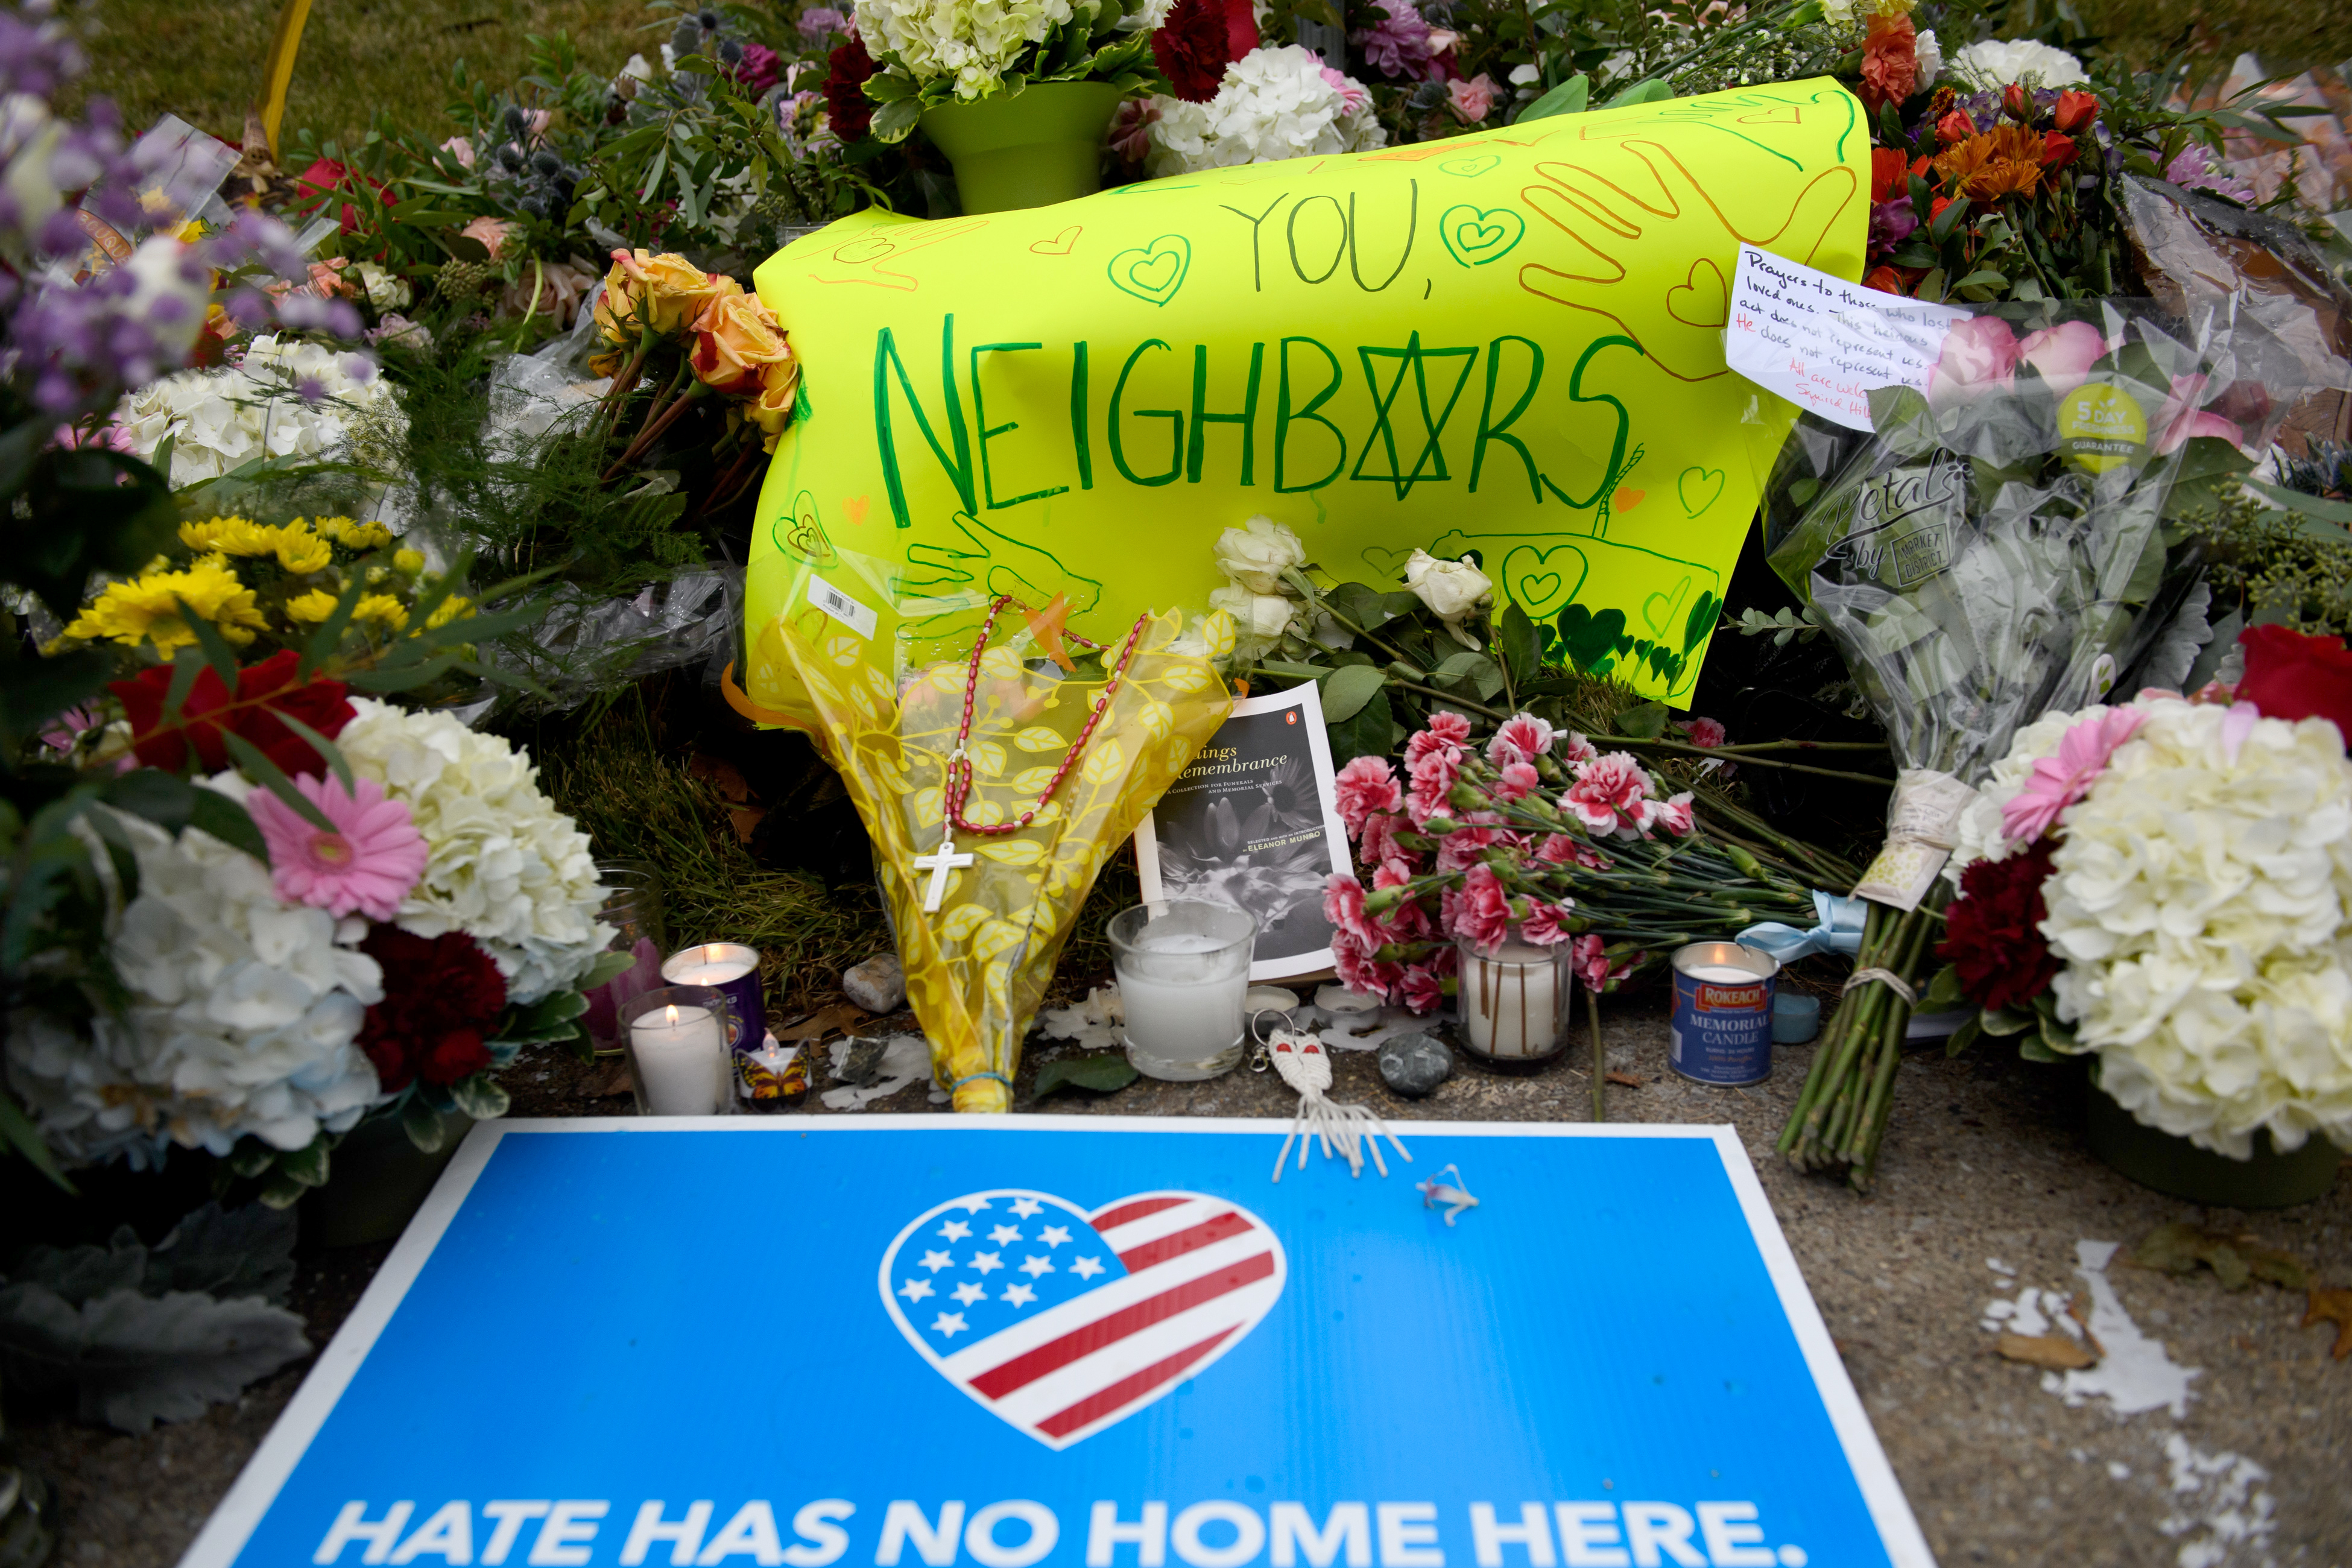 A makeshift memorial down the street from the site of the mass shooting that killed 11 people and wounded 6 at the Tree Of Life Synagogue in Pittsburgh, Penn. on Oct. 28, 2018.